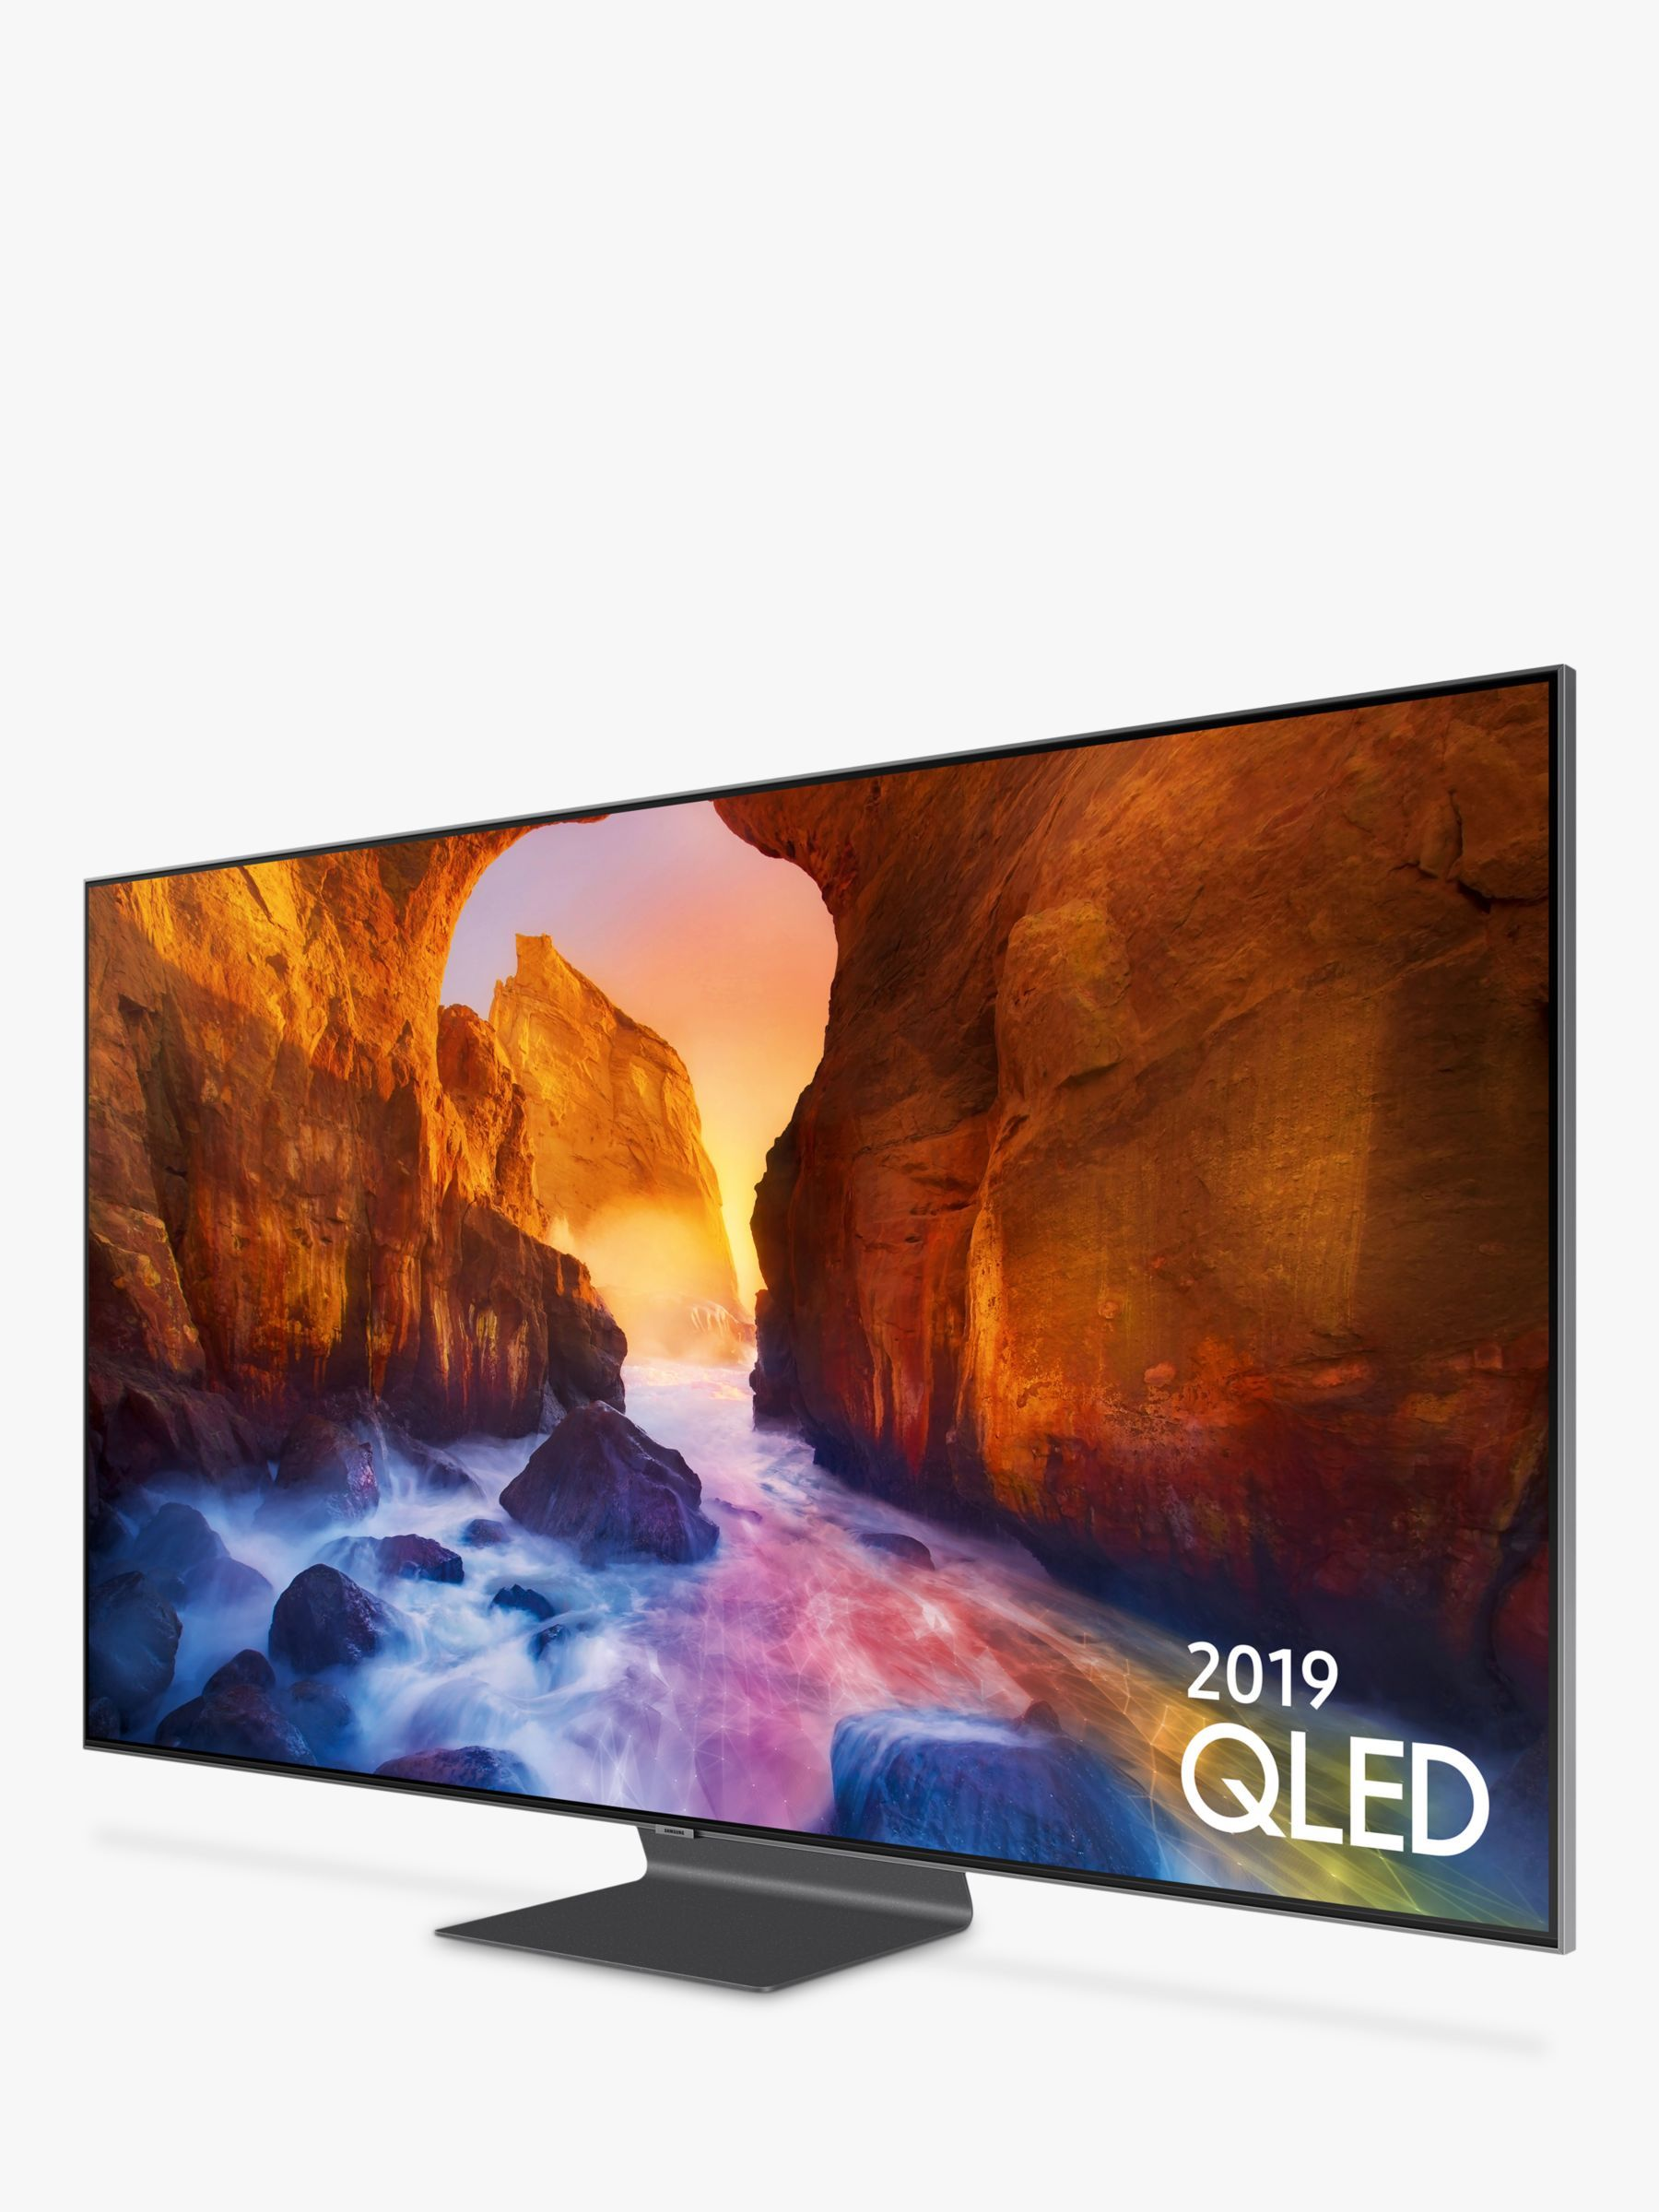 Samsung QE75Q90R (2019) QLED HDR 2000 4K Ultra HD Smart TV